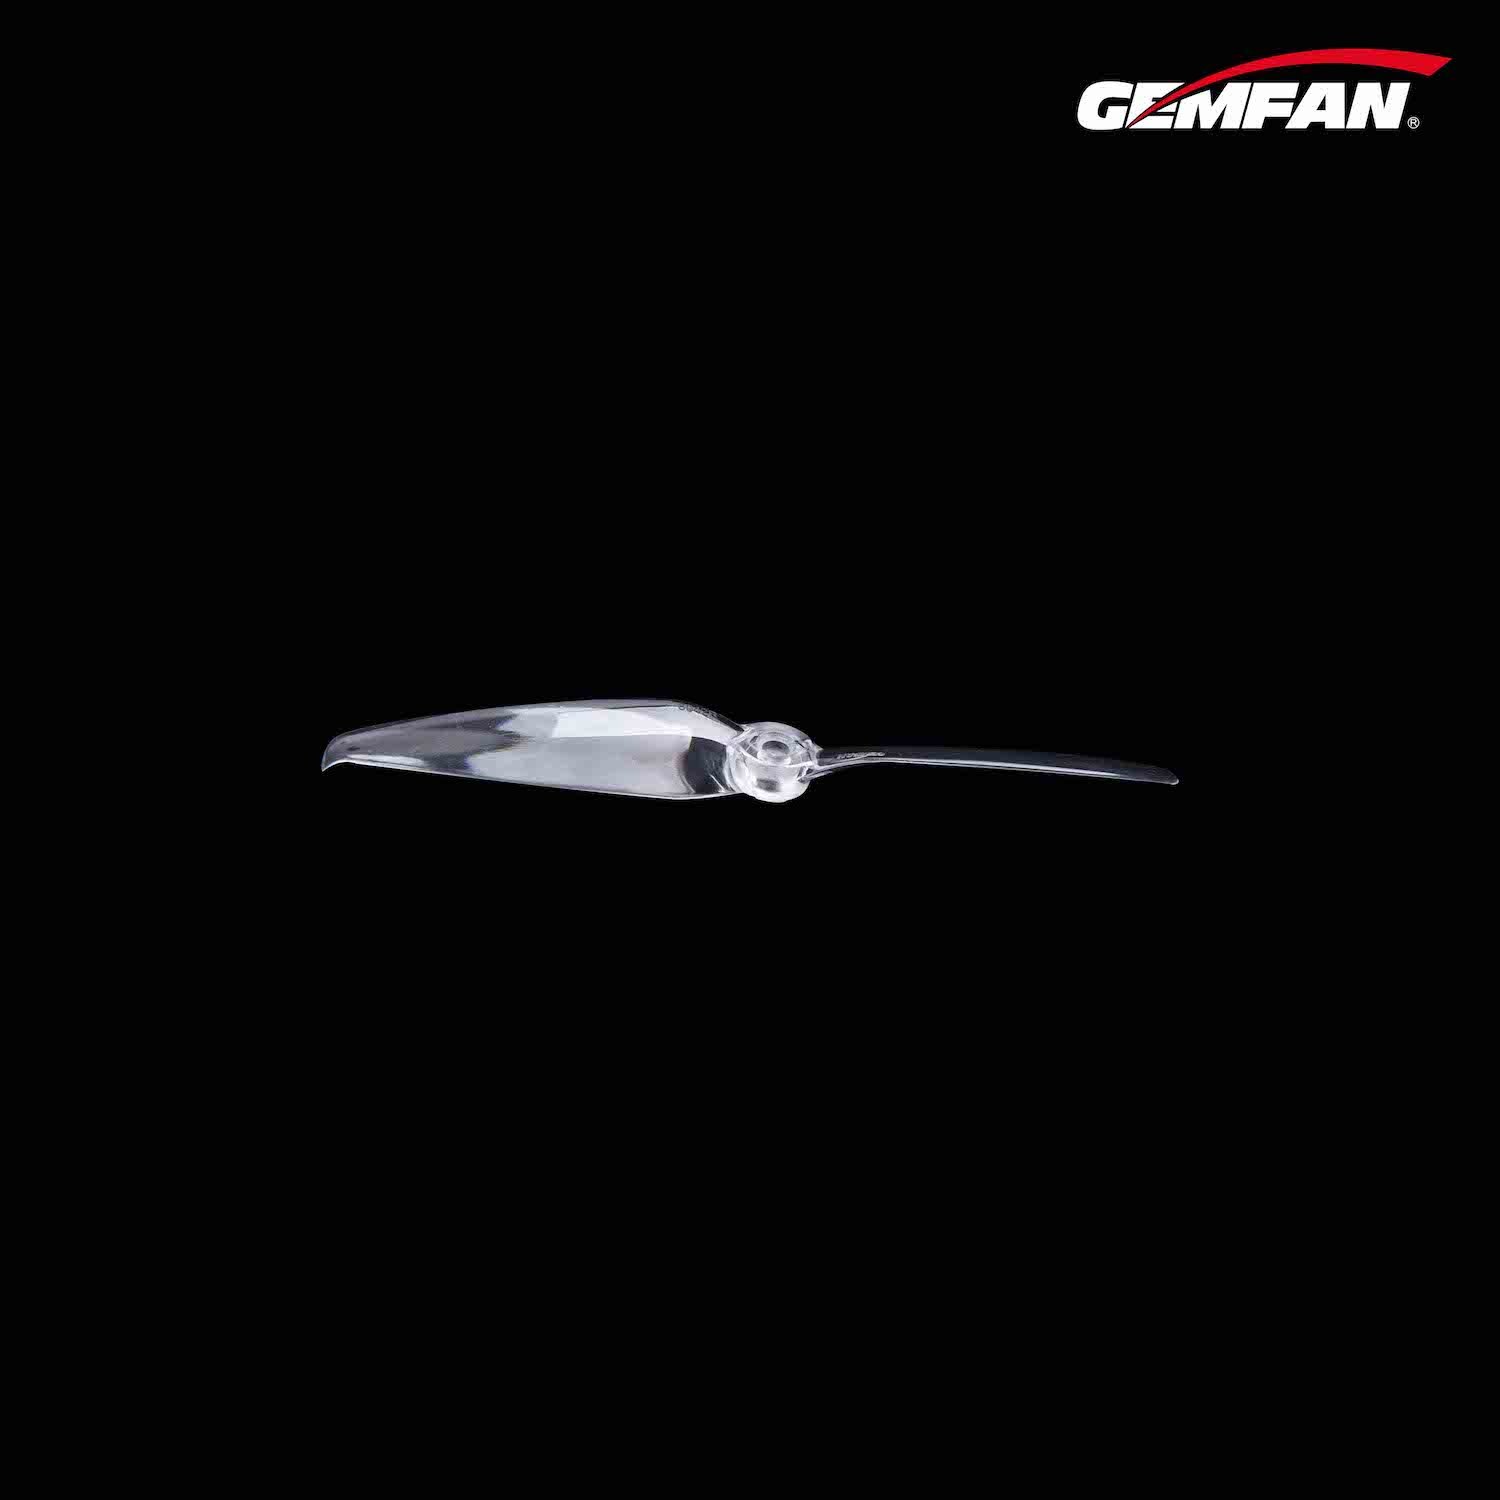 "Crystal Clear Gemfan 6042 6"" Propeller Set"